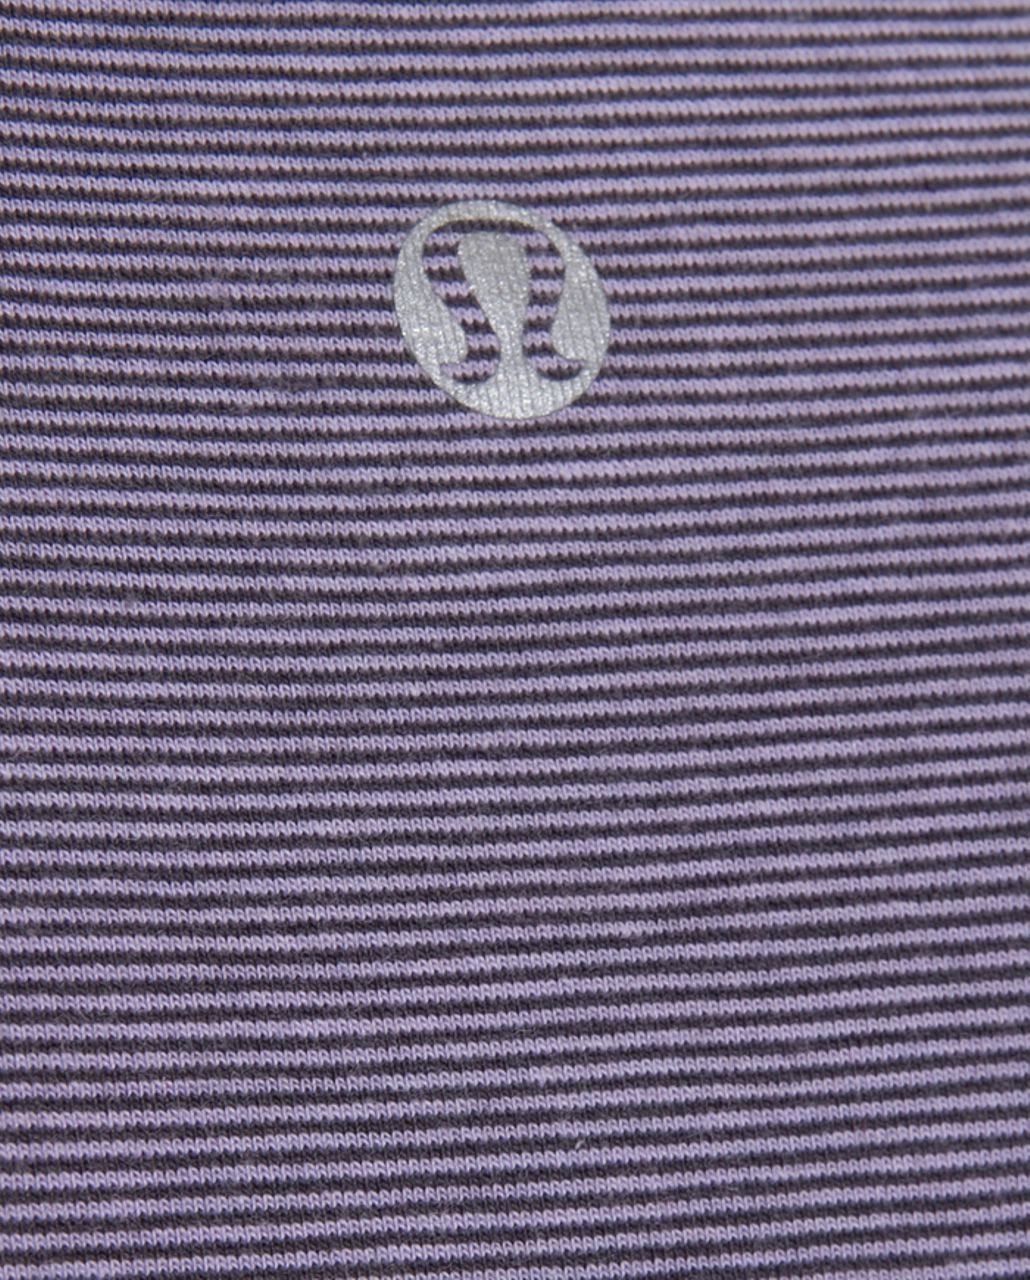 Lululemon Lively Crewneck Tee *Vitasea - Lilac Heathered Coal Wee Stripe